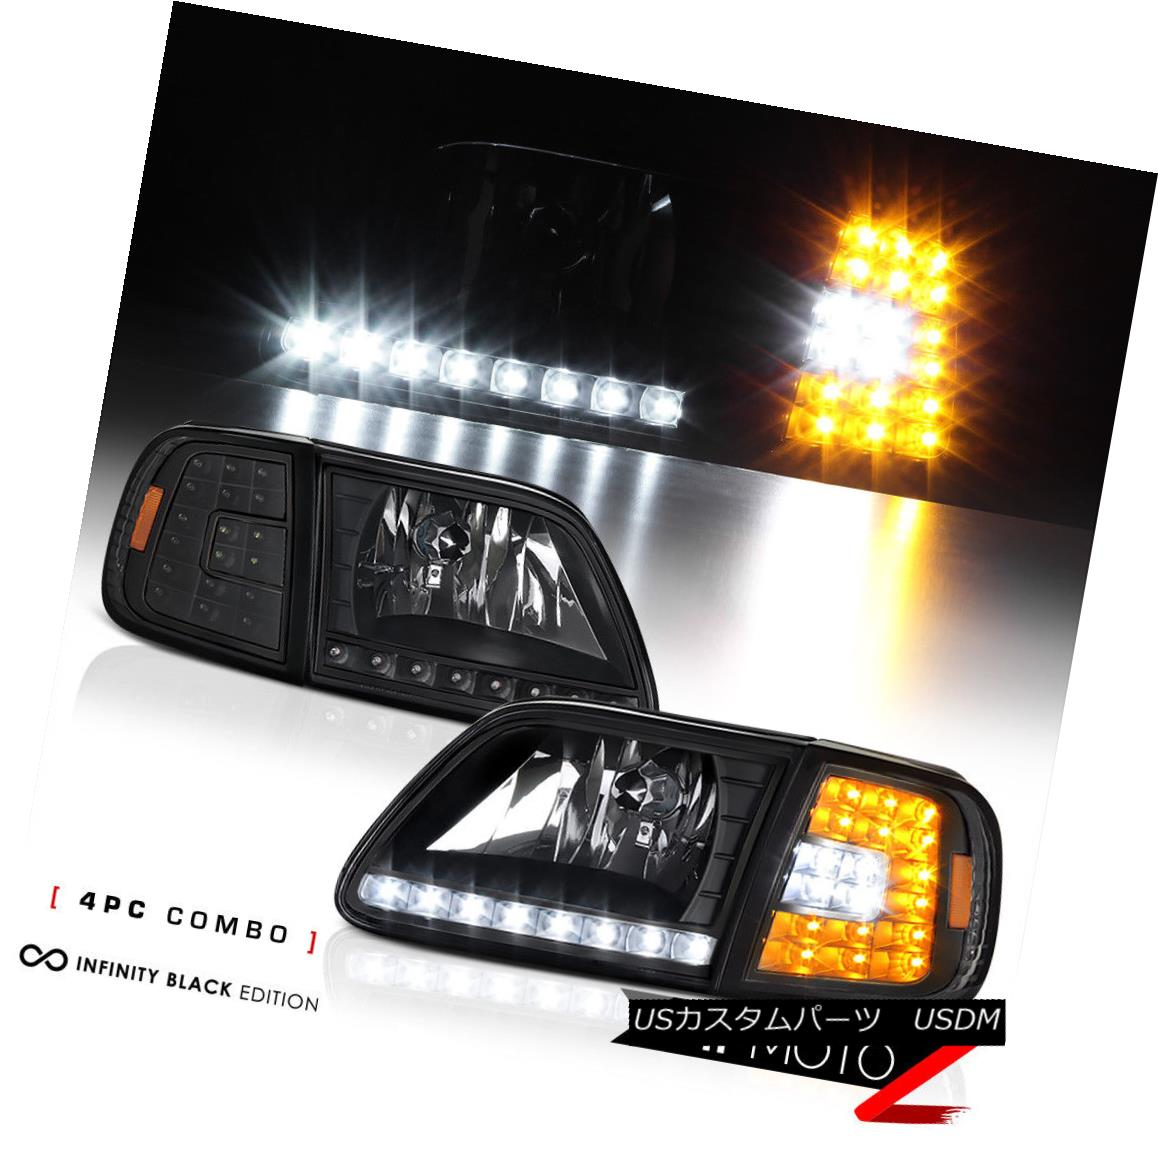 テールライト LED Bulbs FORD 1997-2003 F150 Black 4PC Corner Head Lights Corner Lamps w/ BRIGHT LED SMD Bulbs フォード1997-2003 F150ブラック4PCコーナーヘッドライトランプ(BRIGHT LED SMD球根付), マタニティ服と授乳服のSweetMommy:f707b133 --- officewill.xsrv.jp